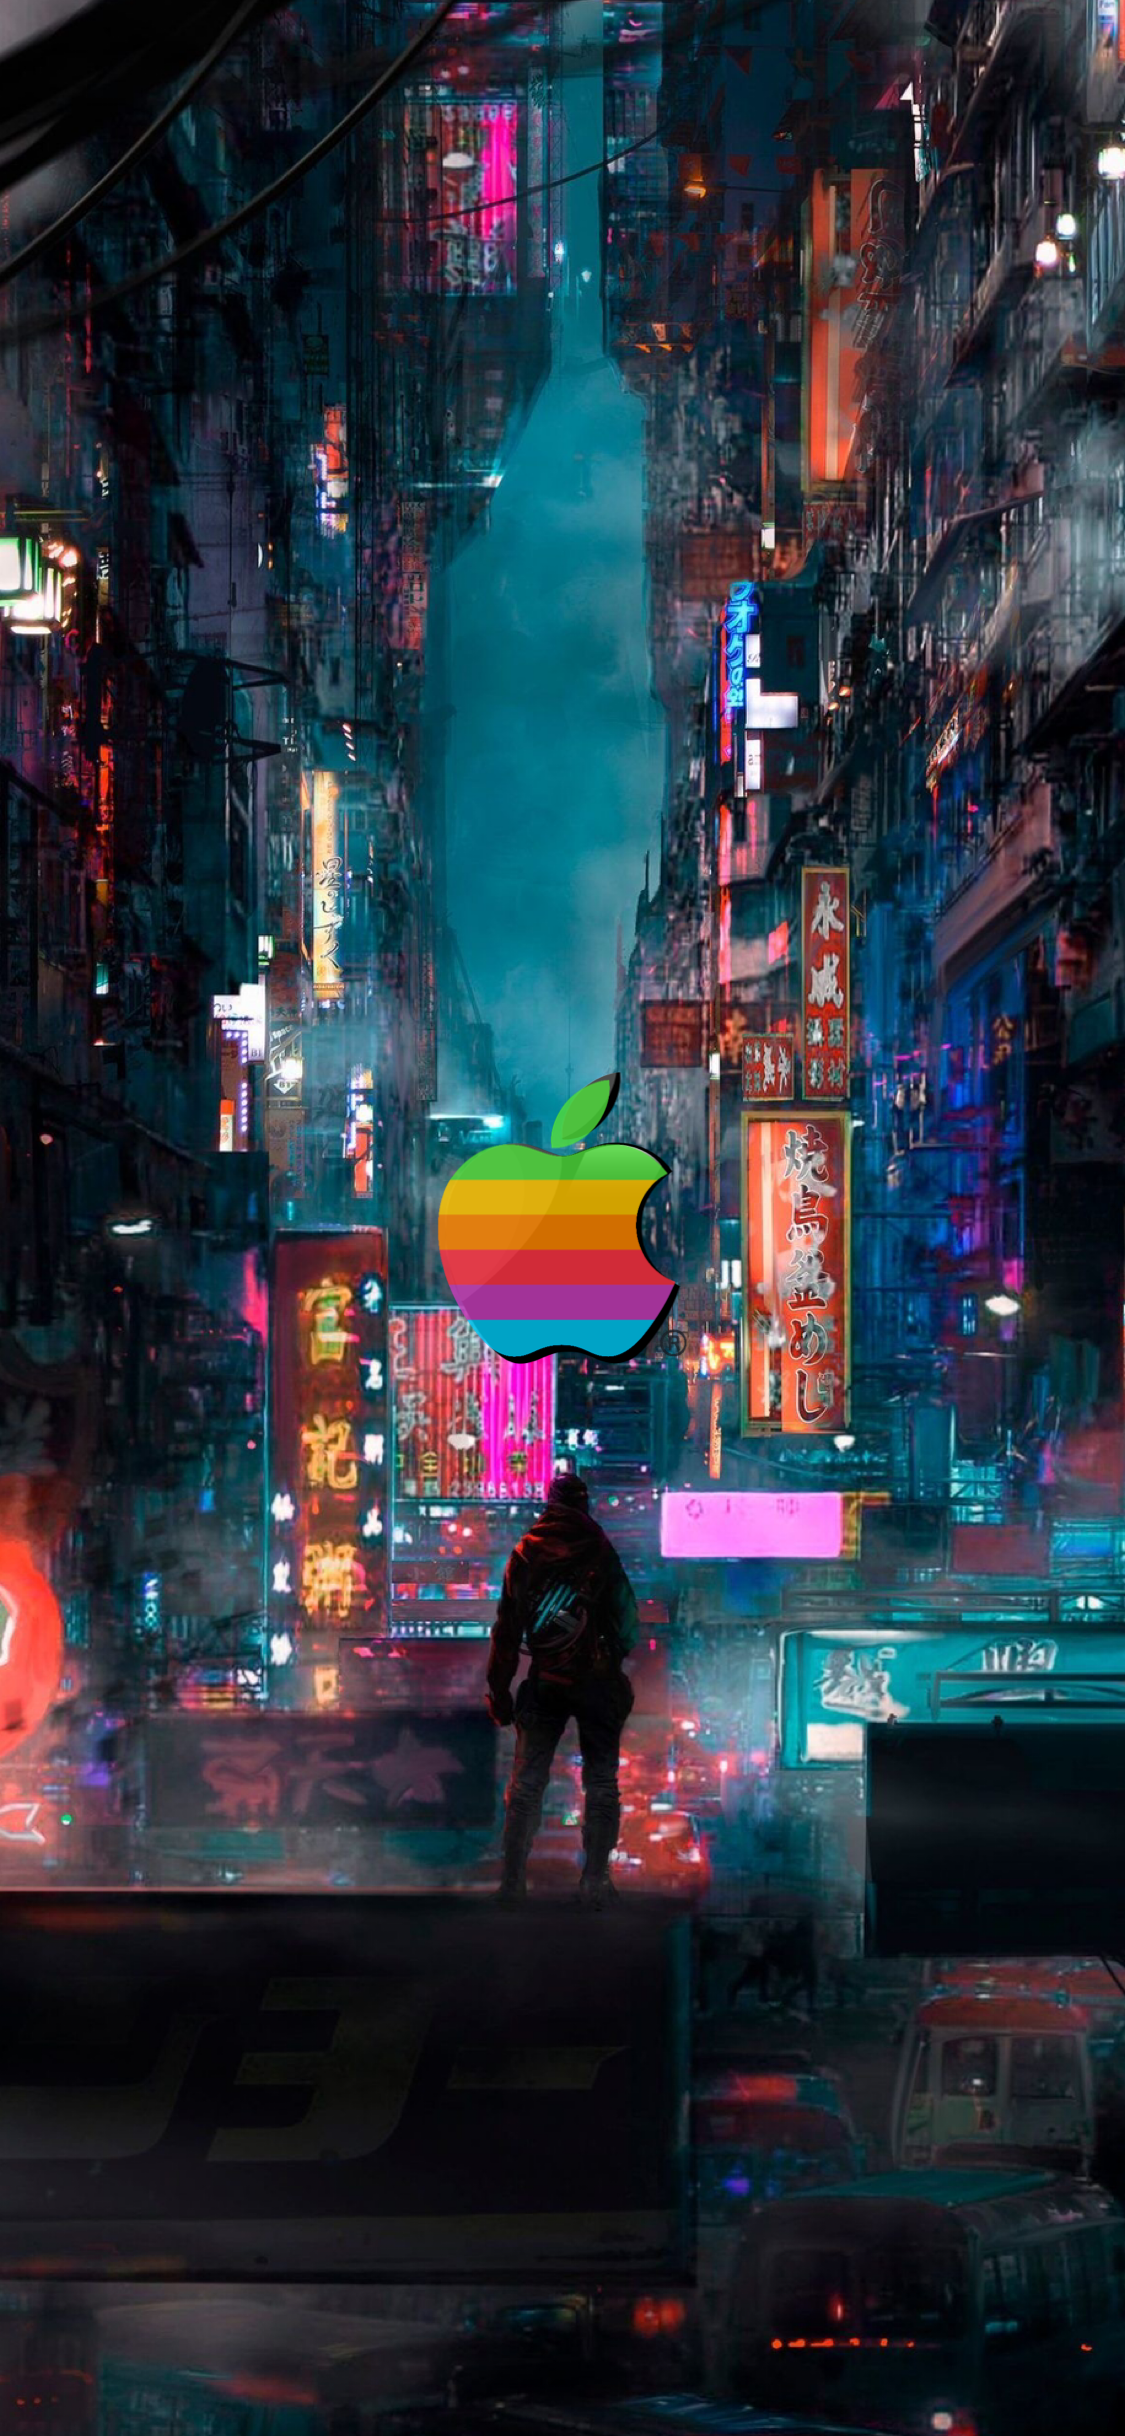 Pin by Tracy Miller on Apple Logo Wallpapers in 2020